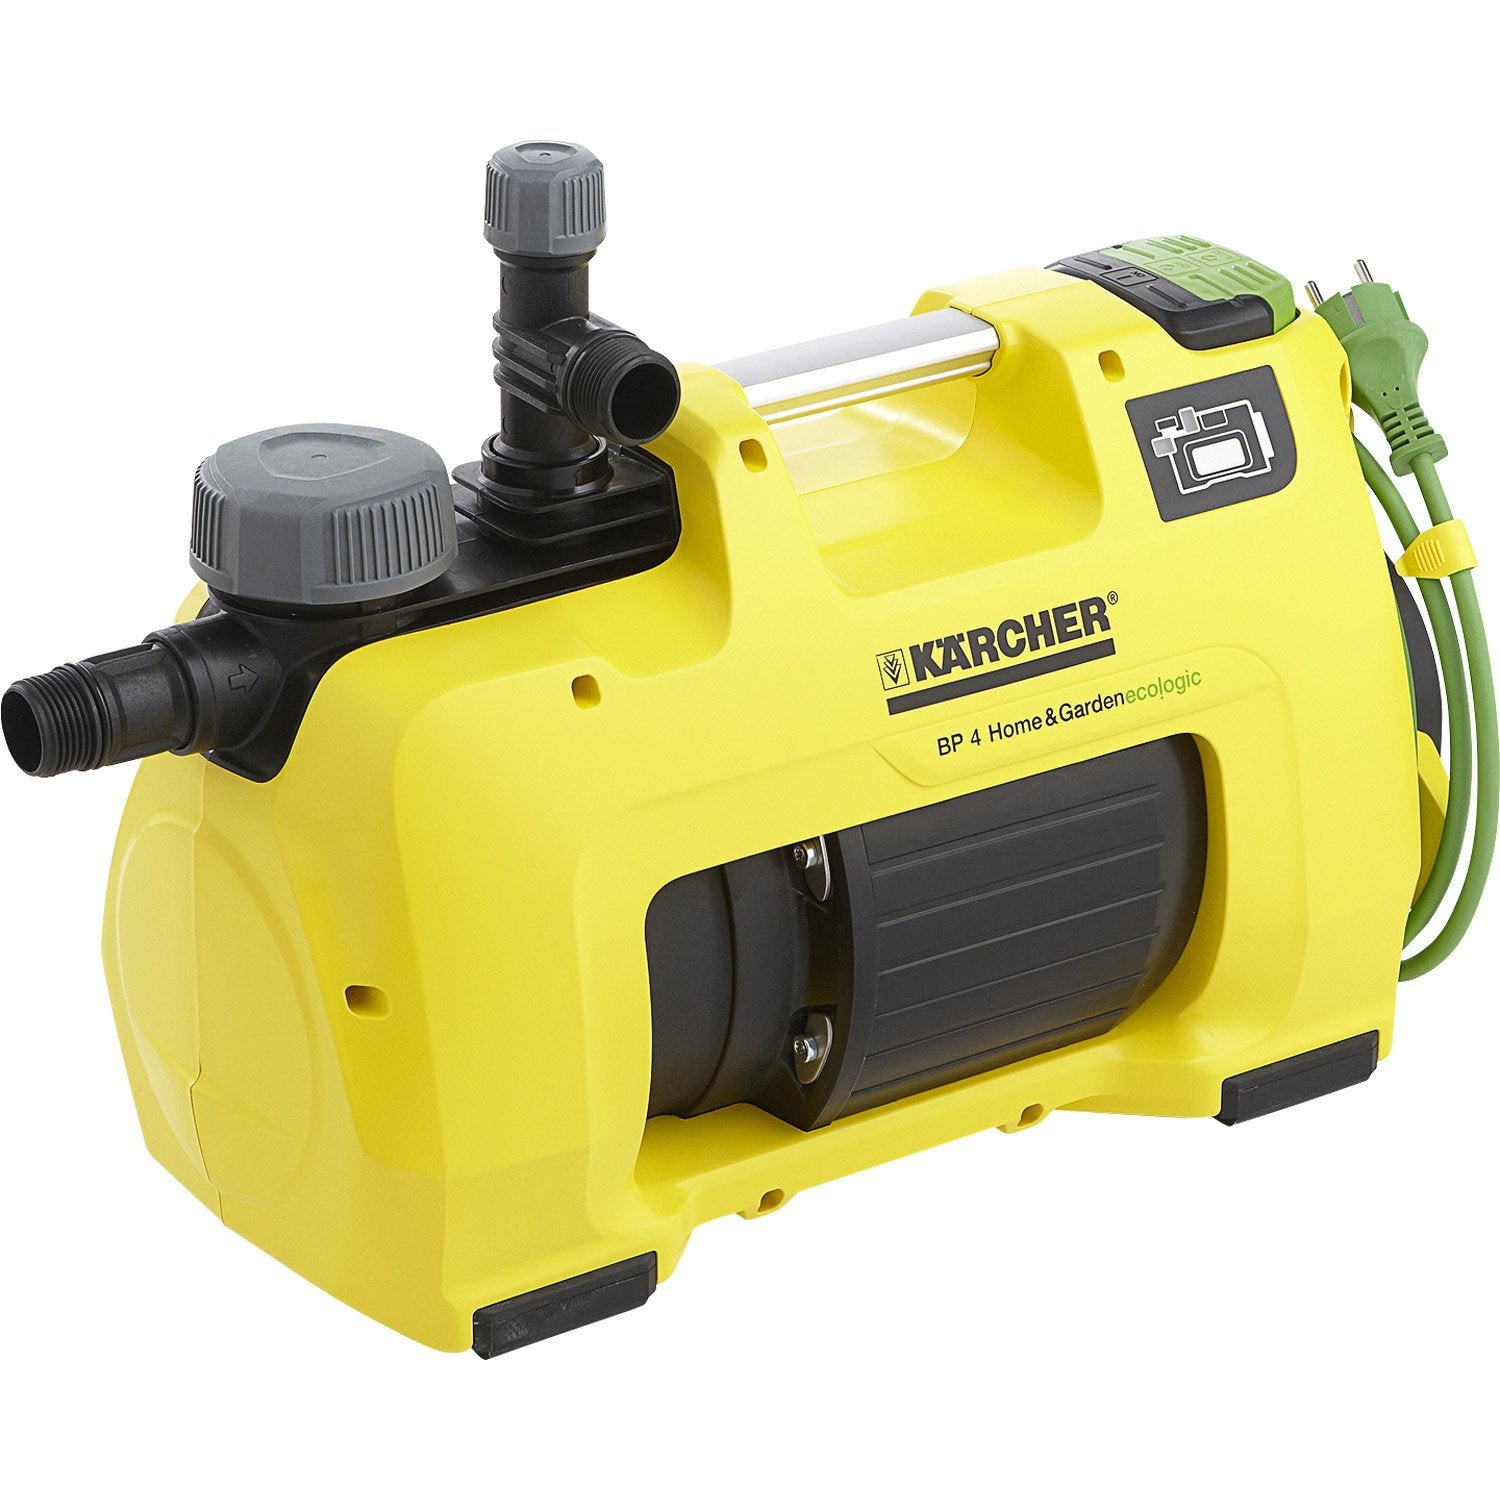 Pompe arrosage automatique karcher bp4 home and garden - Hidrolimpiadoras karcher leroy merlin ...